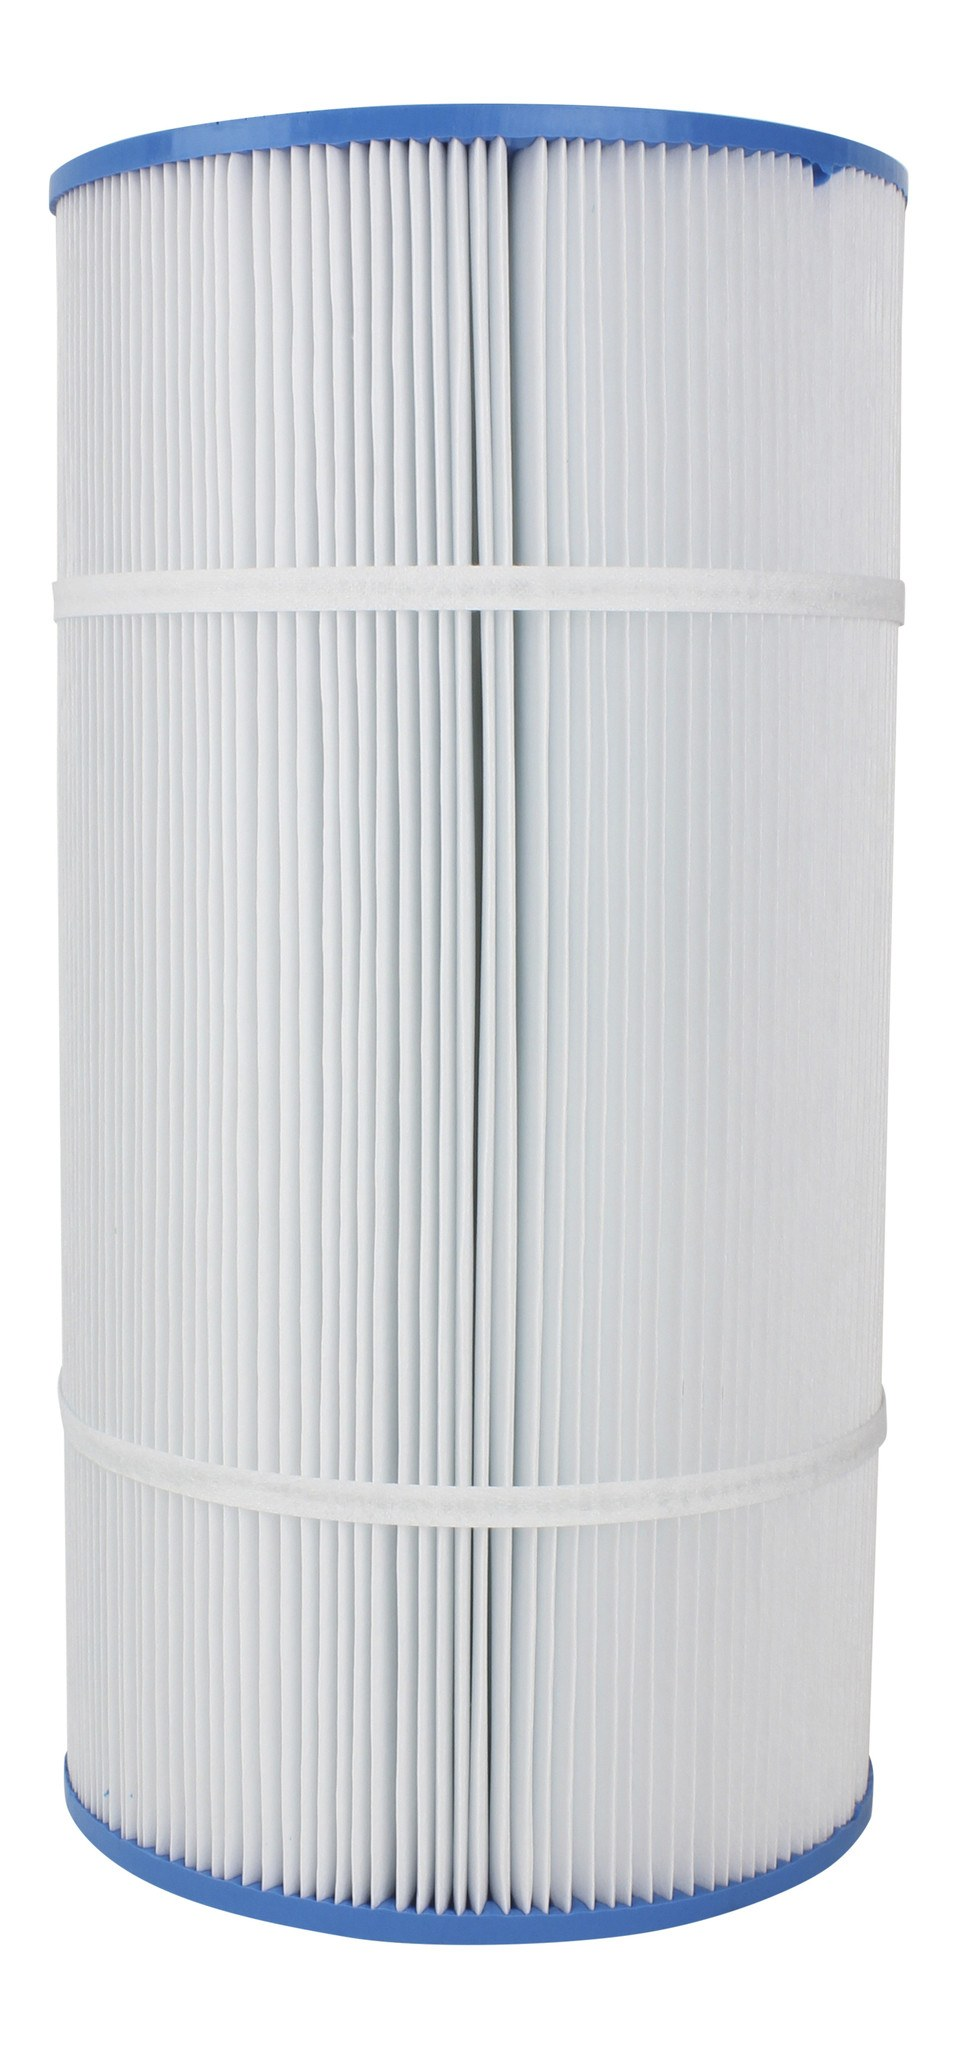 Replaces Unicel C-8411, Pleatco PWWCT75 • Pool & Spa Filter Cartridge-Filter Cartridge-FilterDeal.com